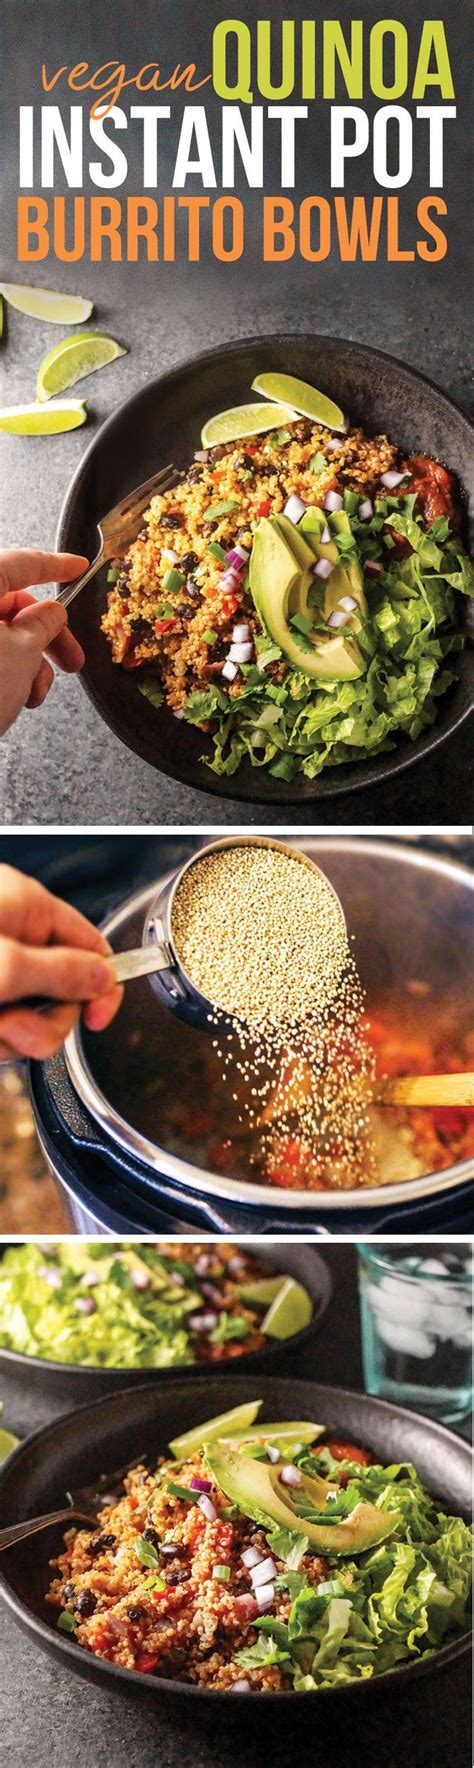 instant pot vegan cookbook the easy plant based electric pressure cooker recipes instant pot resipes books these vegan quinoa burrito bowls are made in the instant